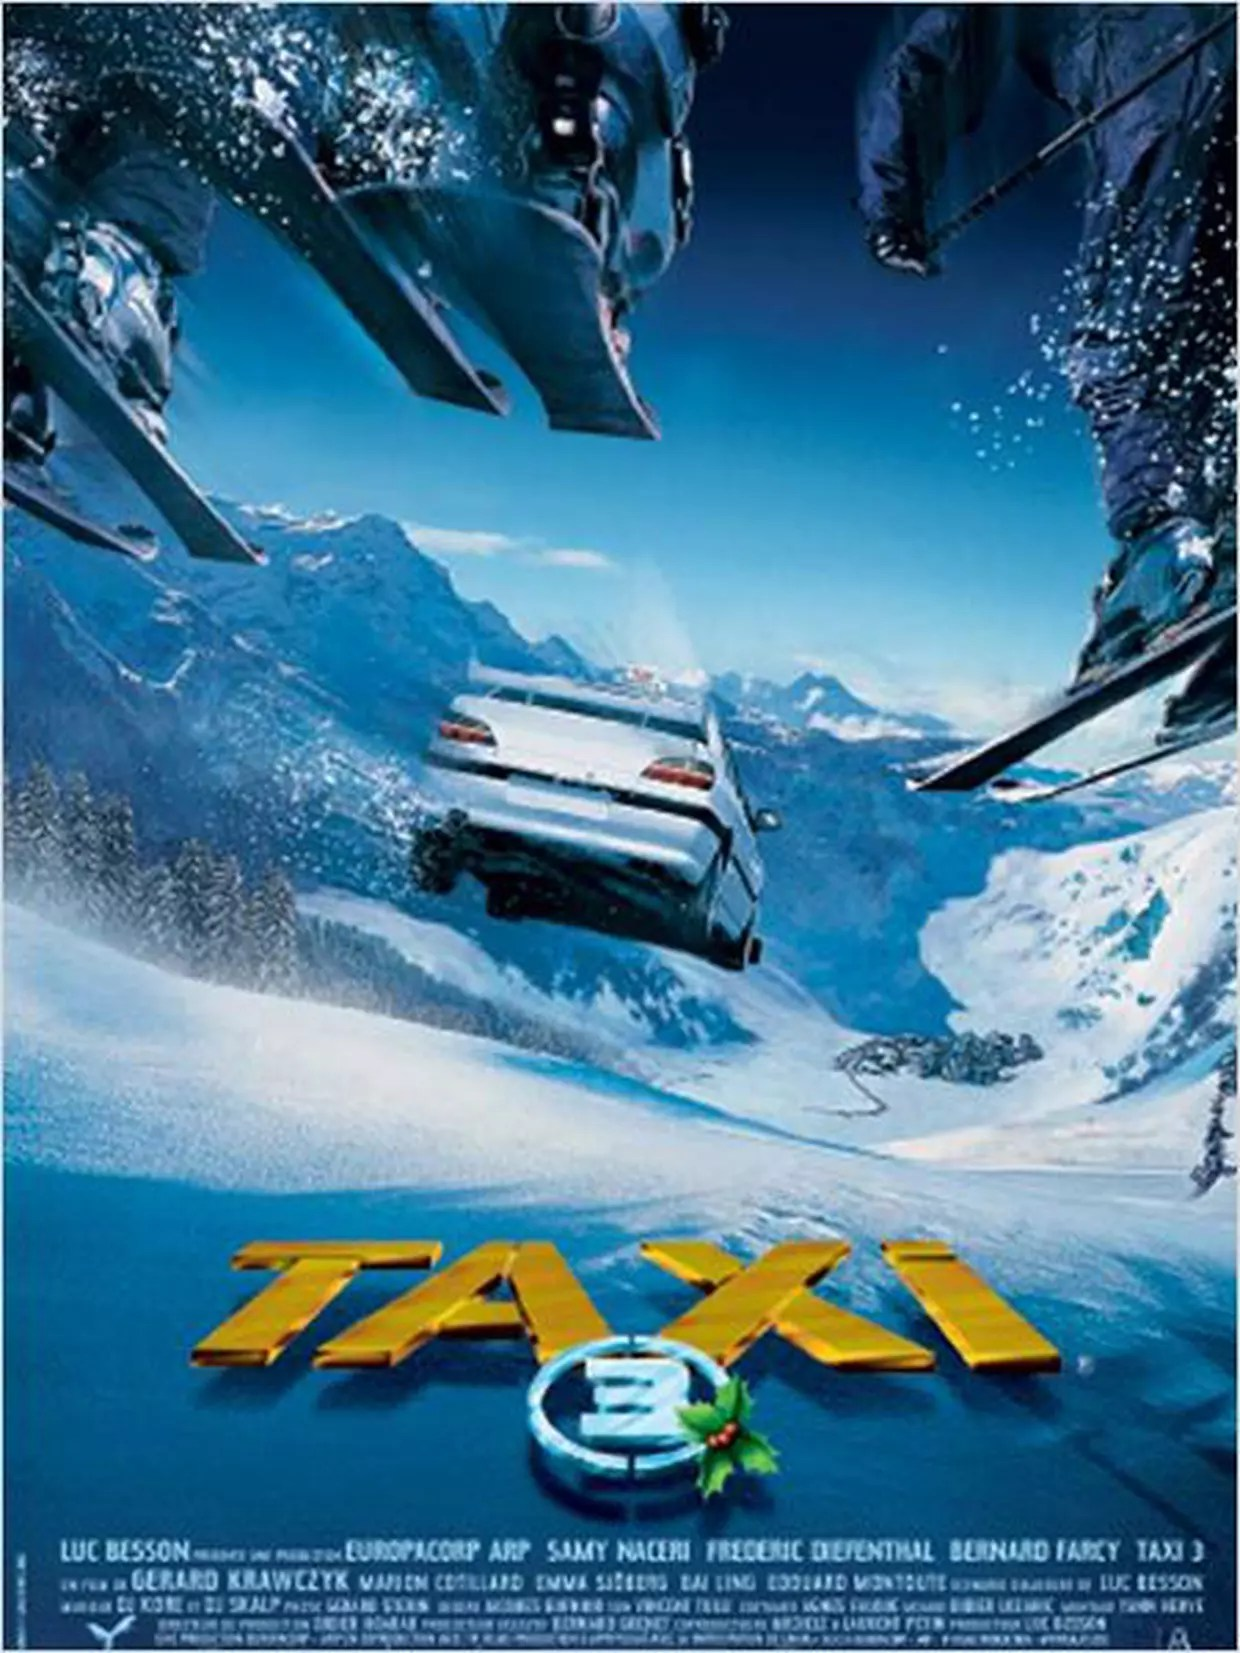 Taxi 4 Film Complet : complet, Bande, Annonce, Film,, Séances,, Streaming,, Sortie,